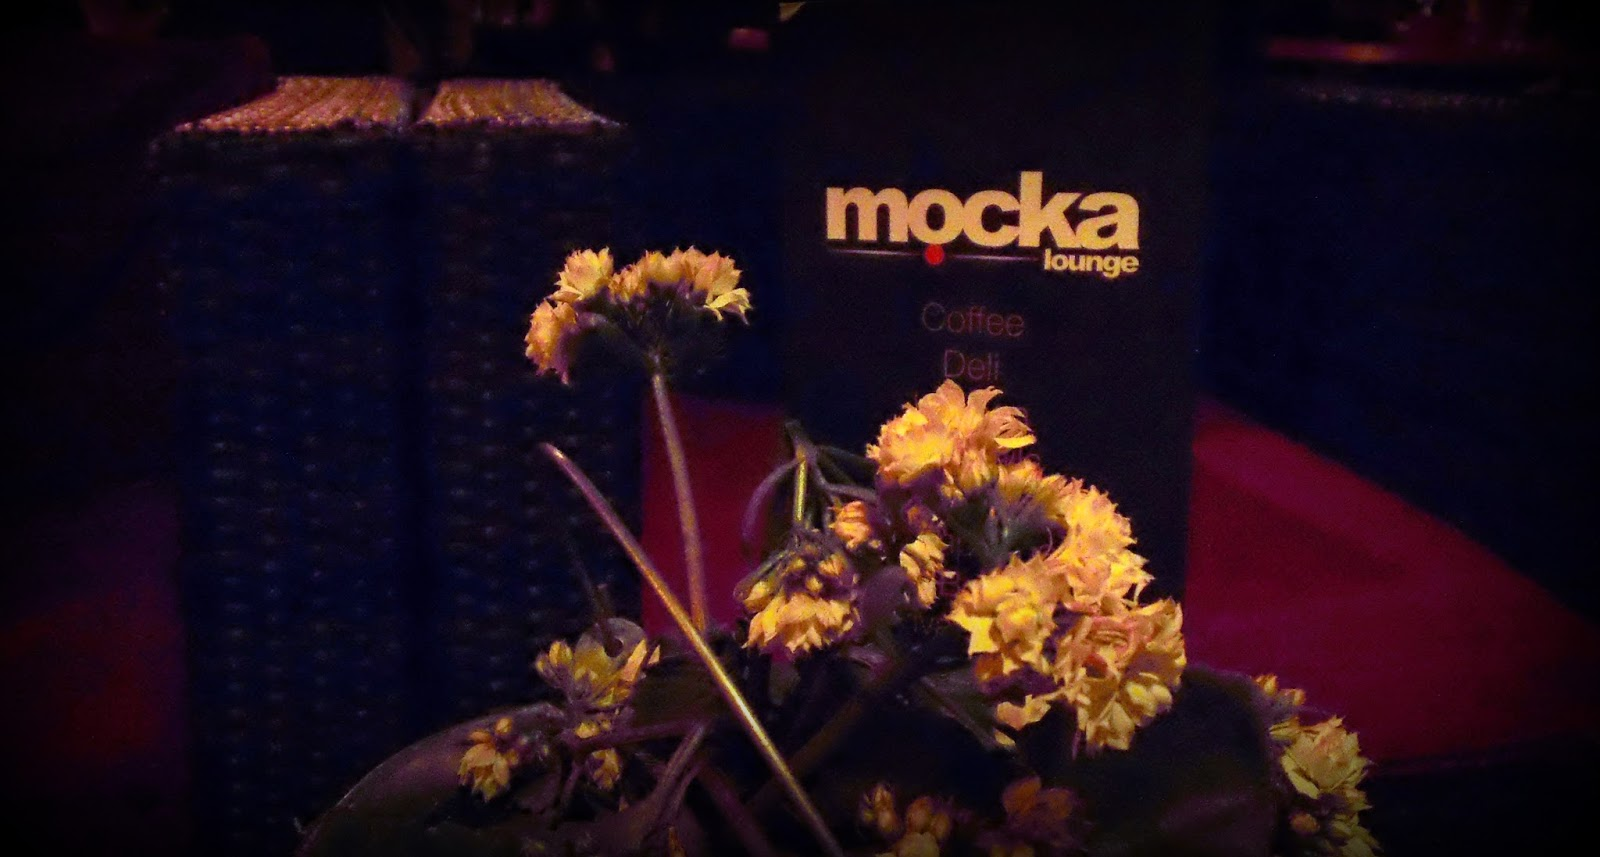 Mocka Lounge Cardiff, Bars in Cardiff, Singles night at Mocka Cardiff